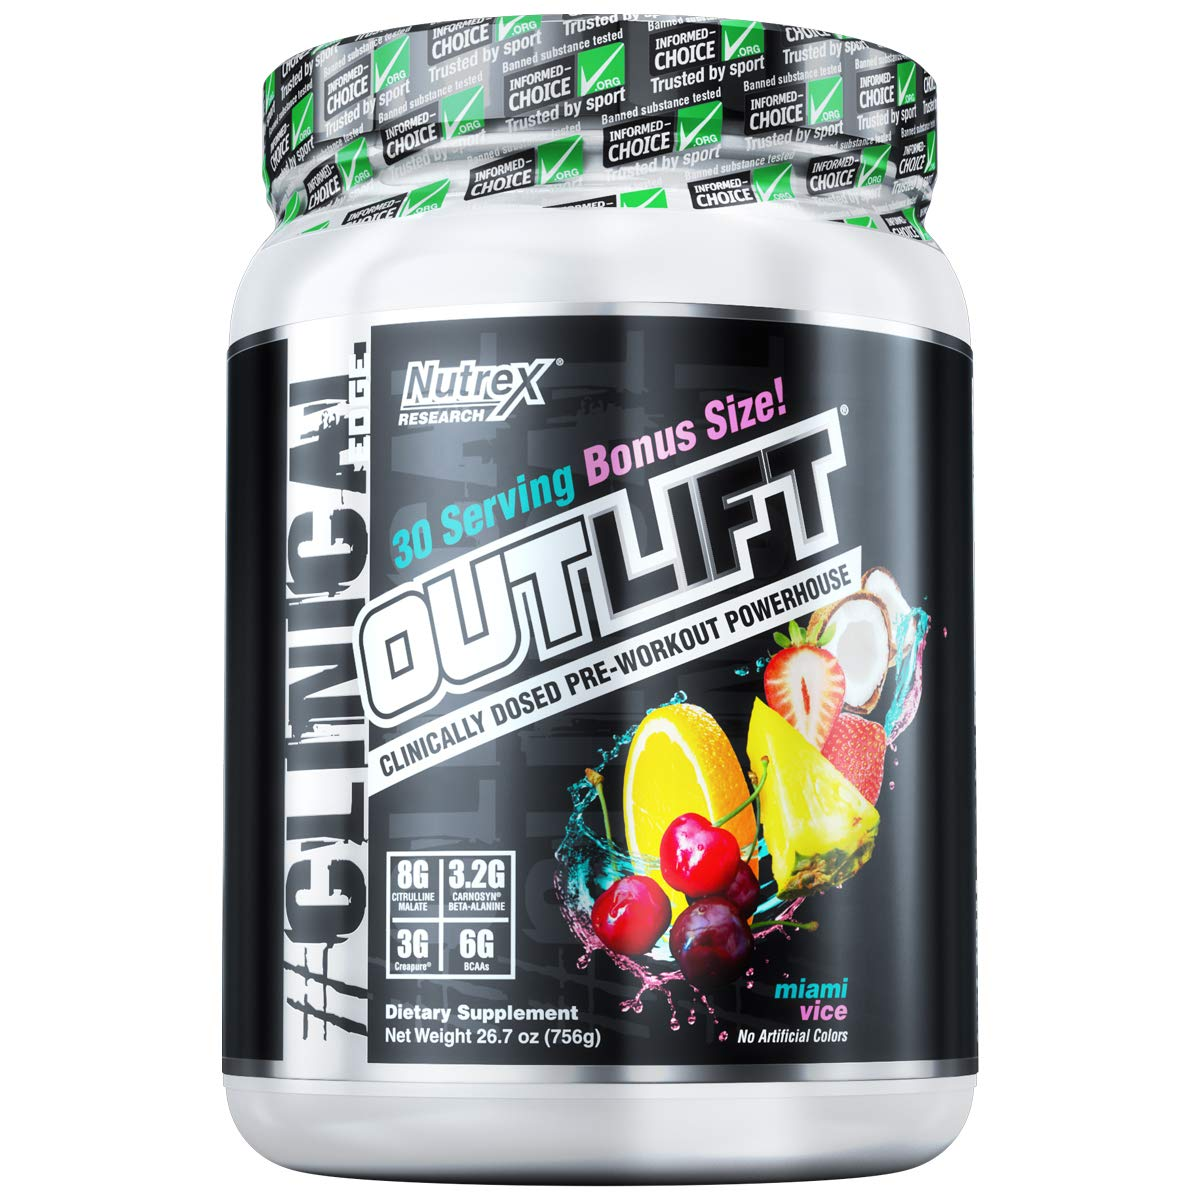 Nutrex Research Outlift Bonus Size | Clinically Dosed Pre-Workout Powerhouse, Citrulline, BCAA, Creatine, Beta-Alanine, Taurine, 0 Banned Substances| Miami Vice | 30 Servings